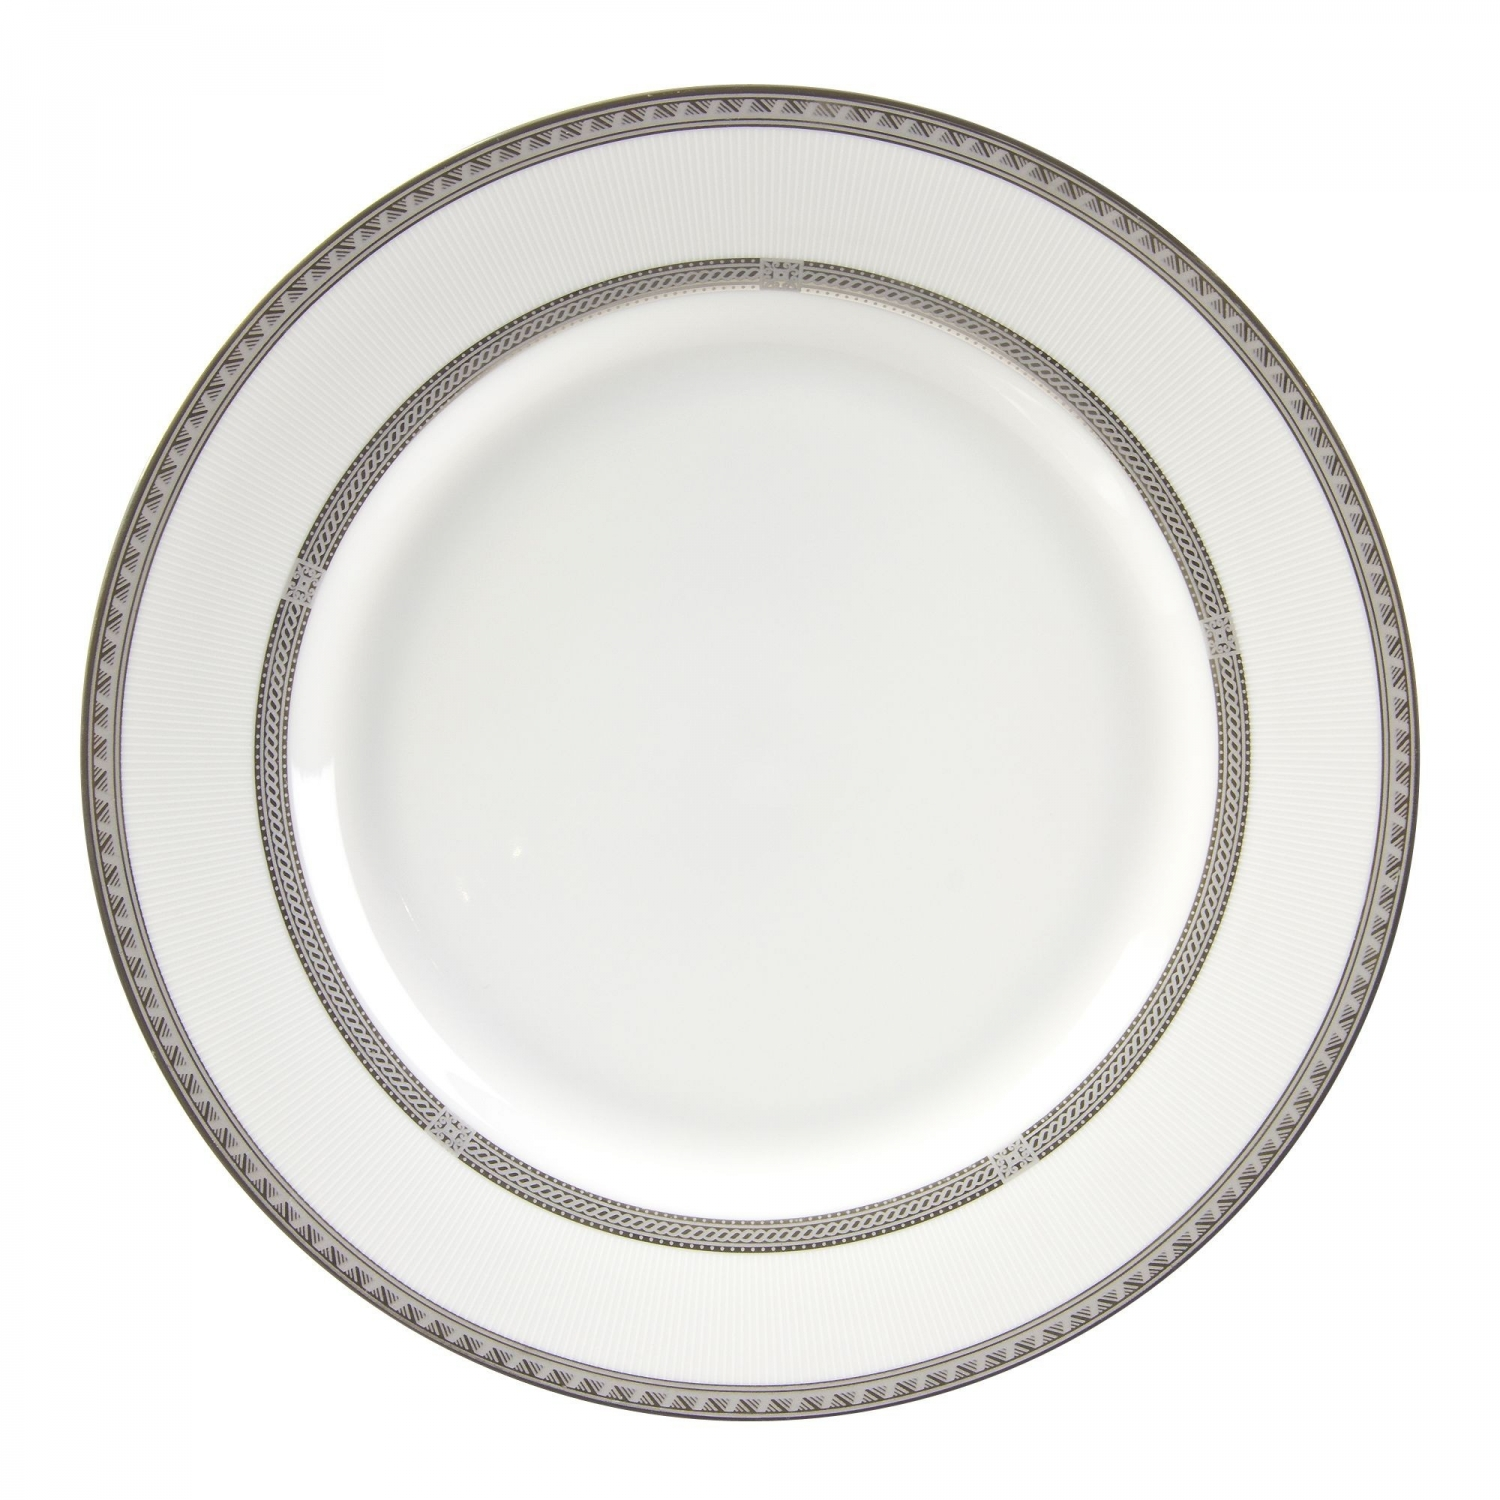 10 Strawberry Street SOP-24 Sophia Charger Plate 11-7/8""